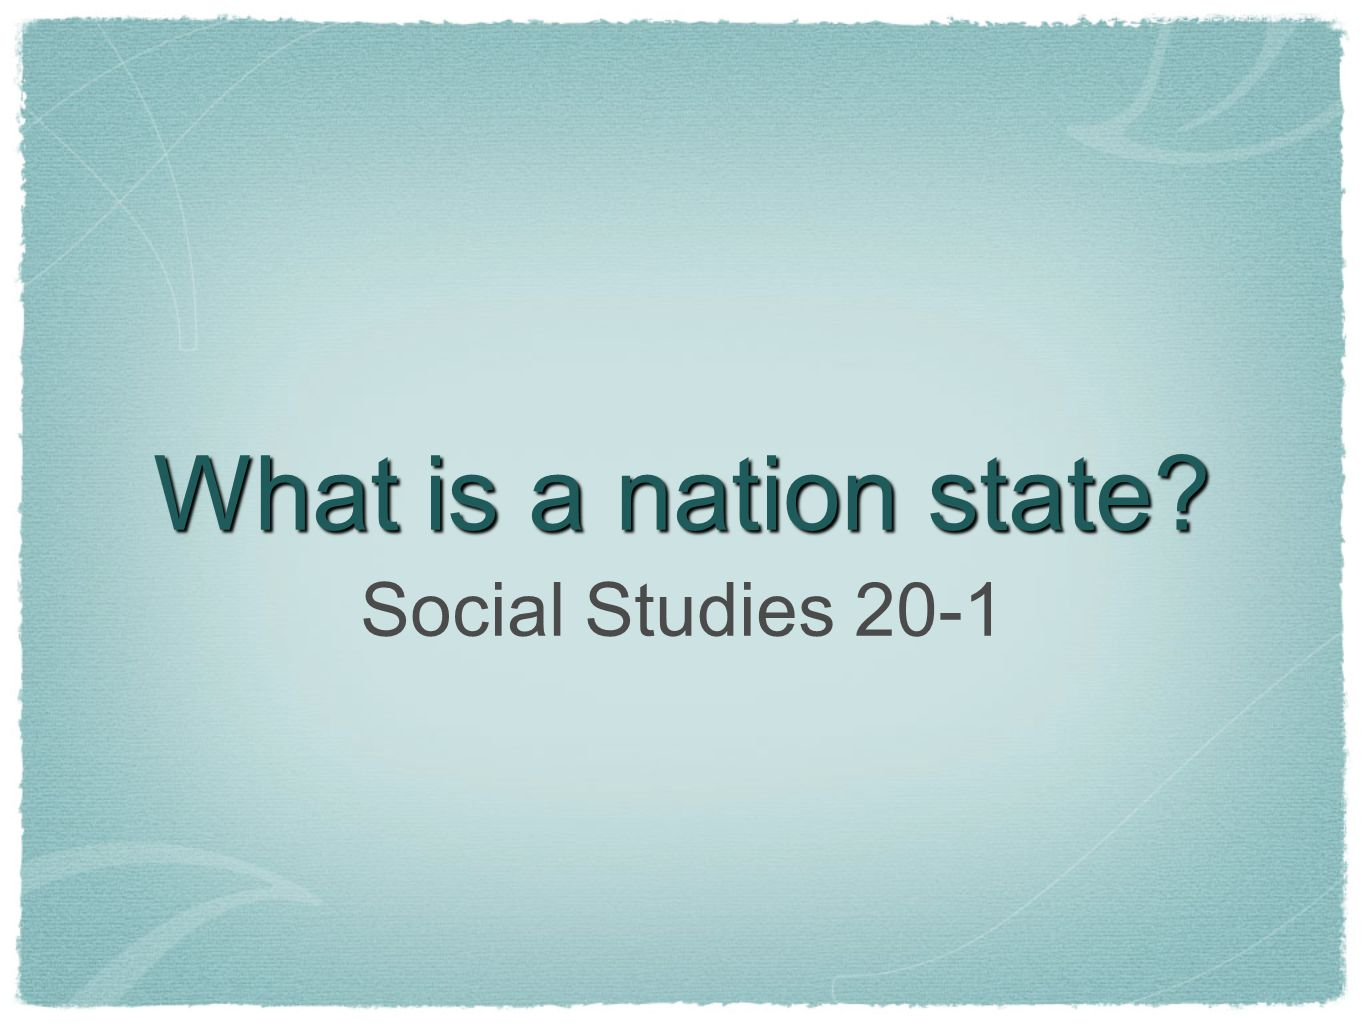 What is a nation state Social Studies 20-1